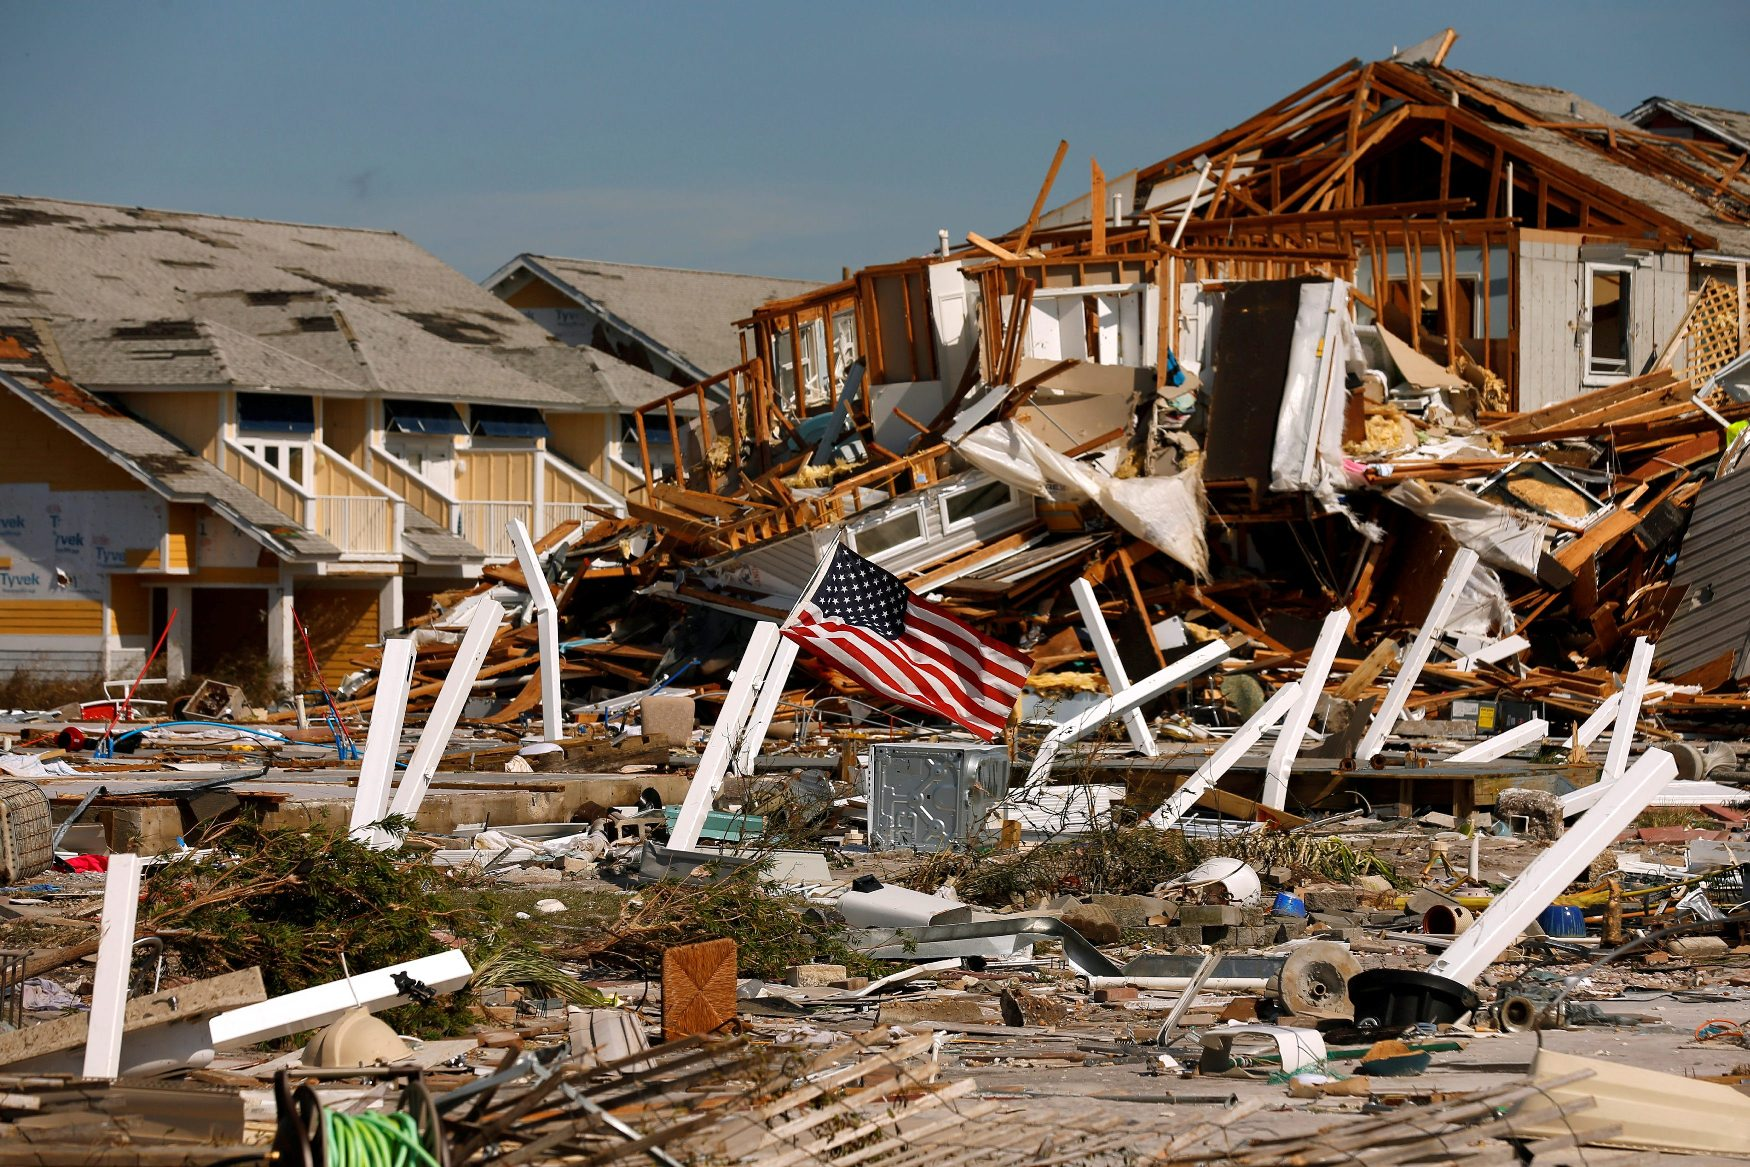 An American flag flies amongst rubble left in the aftermath of Hurricane Michael in Mexico Beach, Florida, U.S. October 11, 2018. REUTERS/Jonathan Bachman     TPX IMAGES OF THE DAY